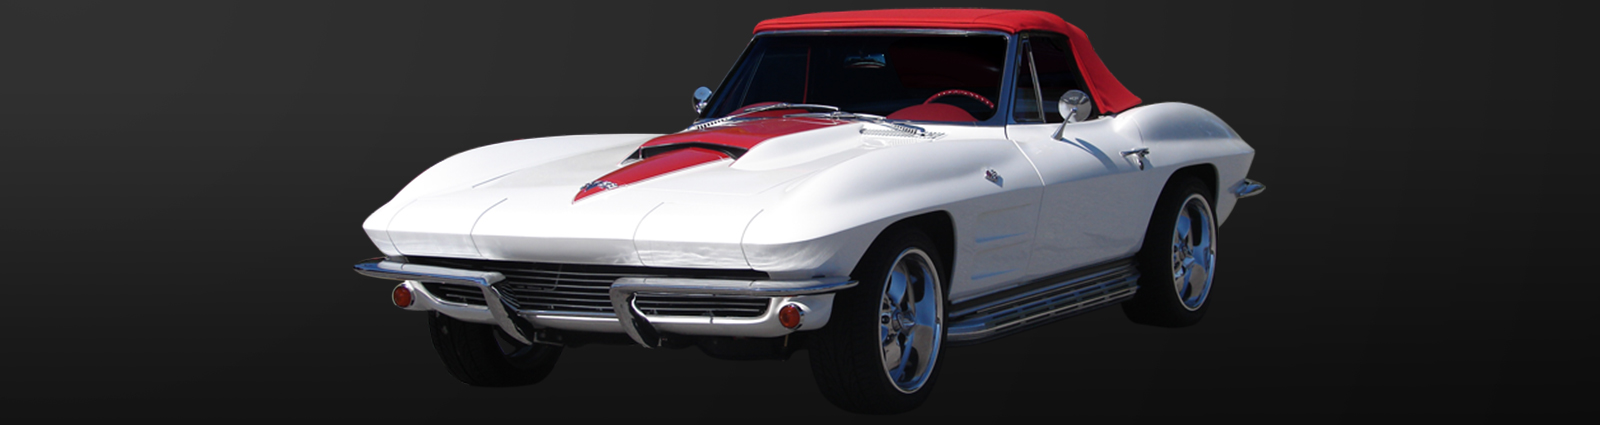 mullikins-corvette-header-2